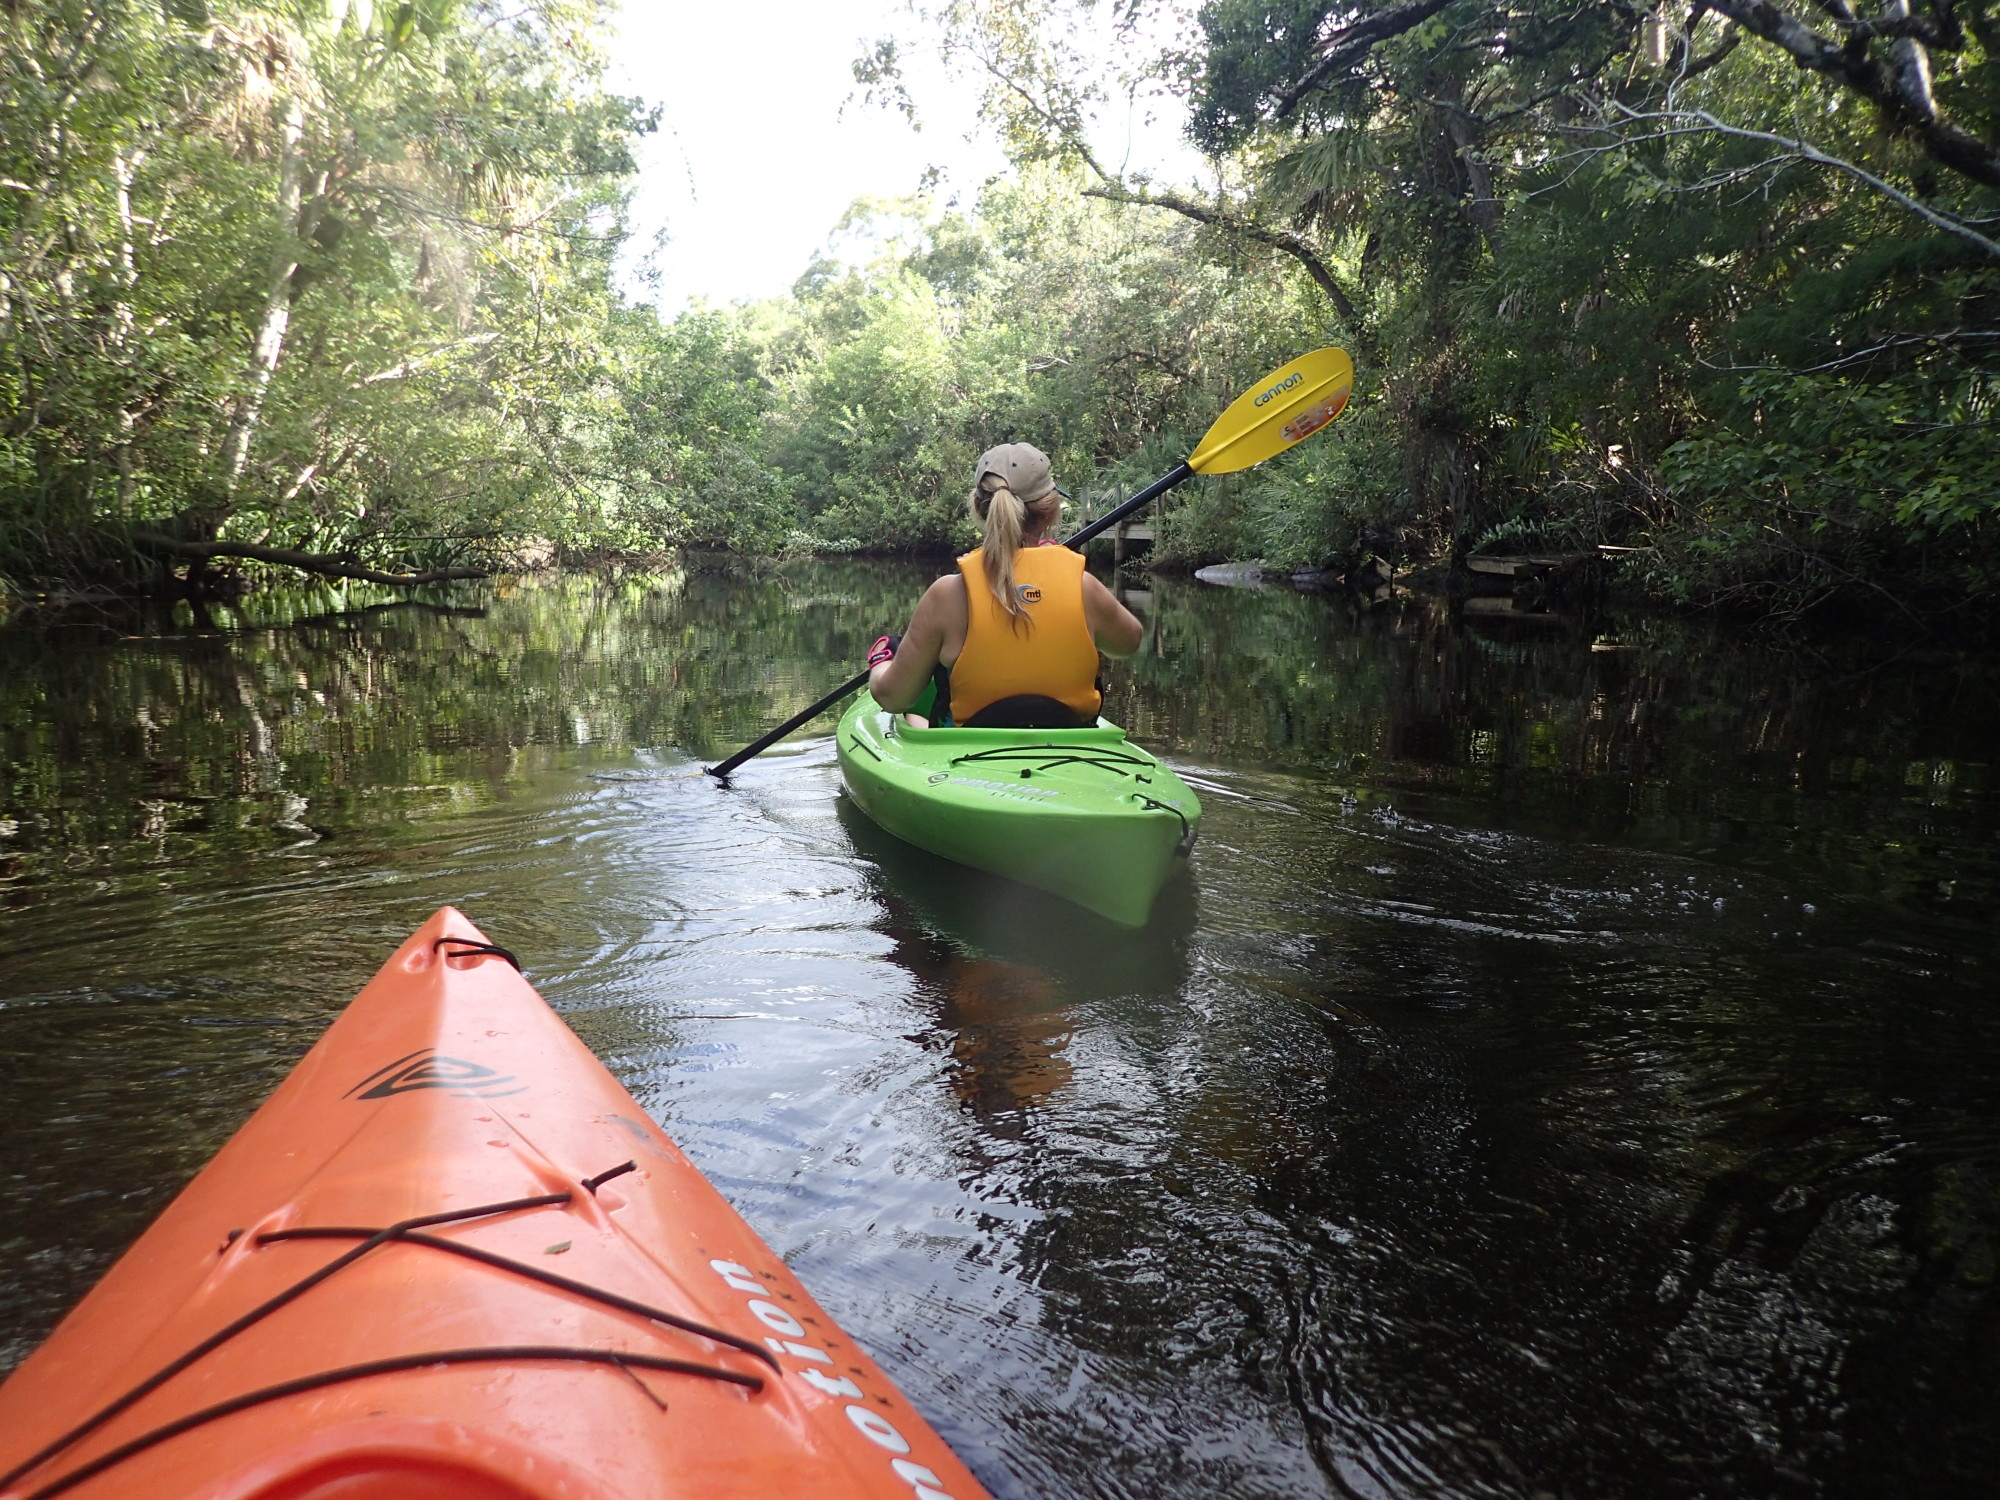 "Vero Beach, Fellsmere and Sebastian are filled with beautiful waterways and extensive areas of native wetlands and forests that we so carefully protect. There are numerous opportunities to explore a myriad of native habitats abounding with birds and other wildlife. Whether you enjoy hiking, bird watching, taking an exciting eco-tour, or quietly paddling with family or friends on an ""Old Florida"" river our county is the place to visit."